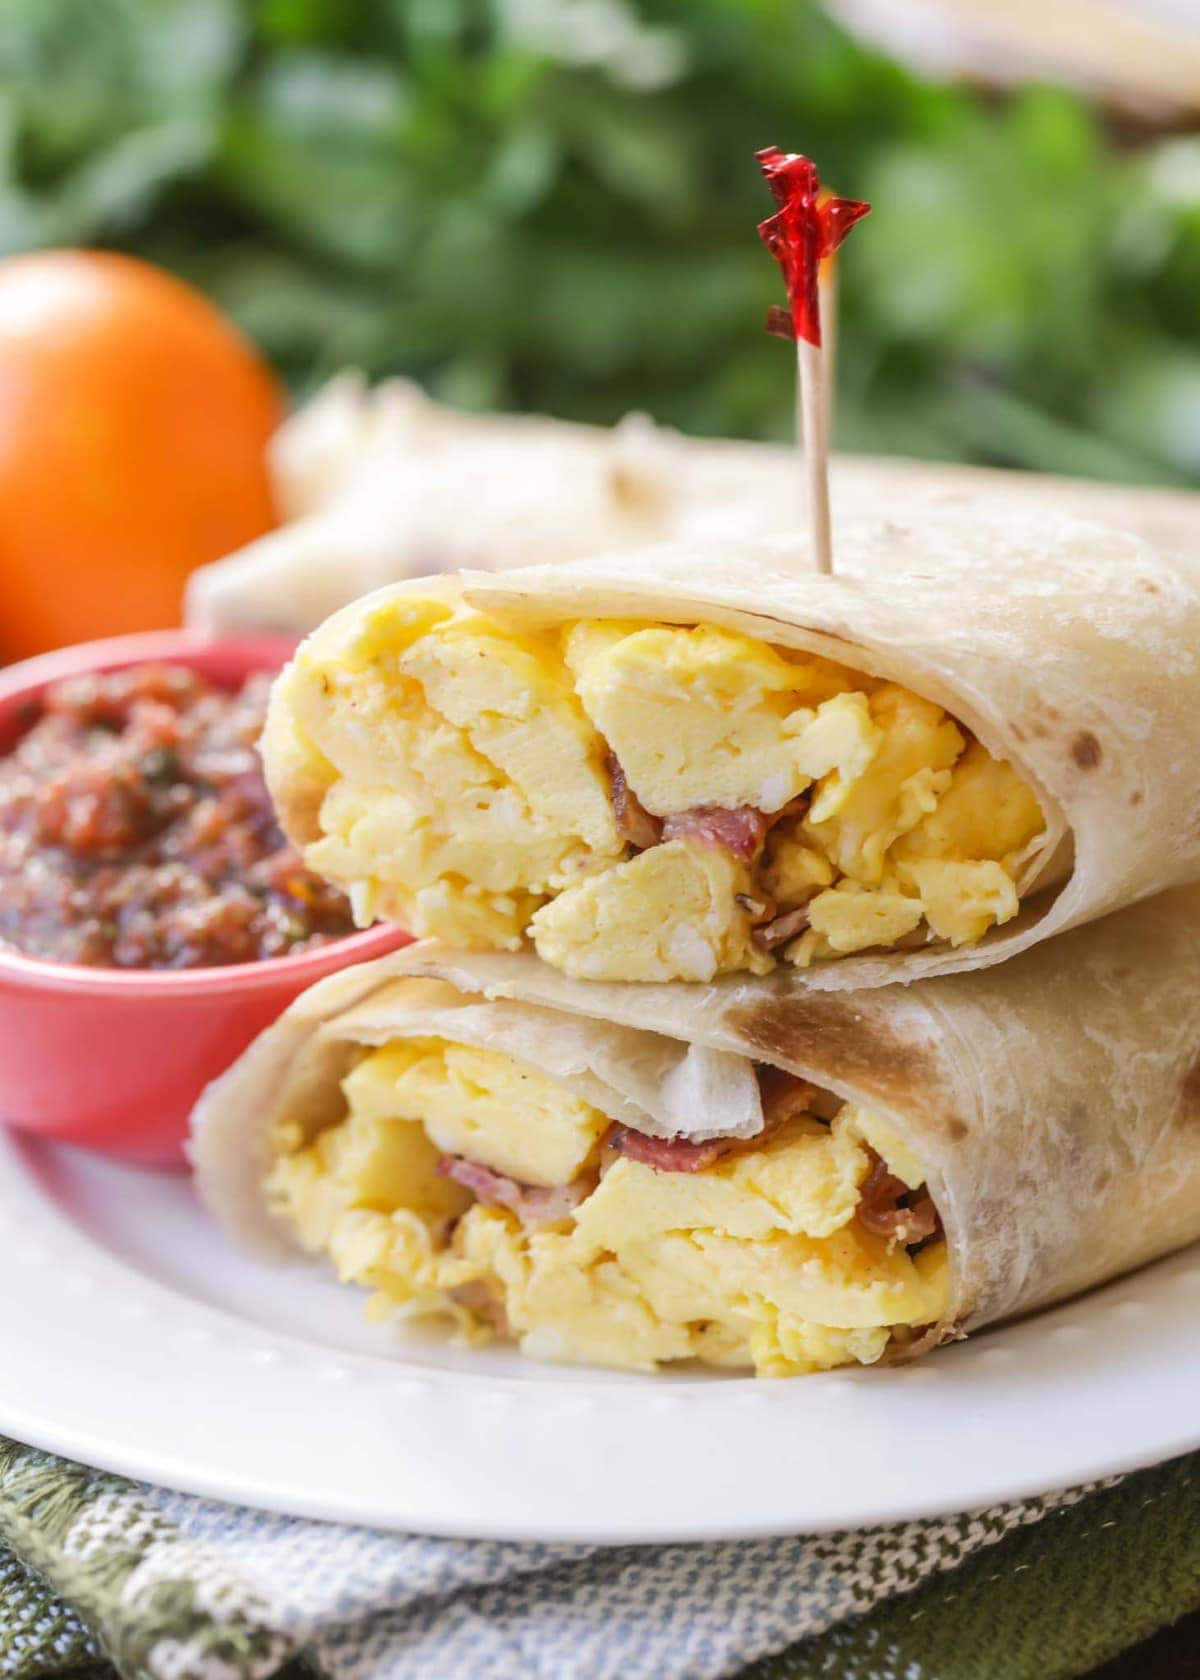 Best Breakfast Burrito Recipe cut in half on plate